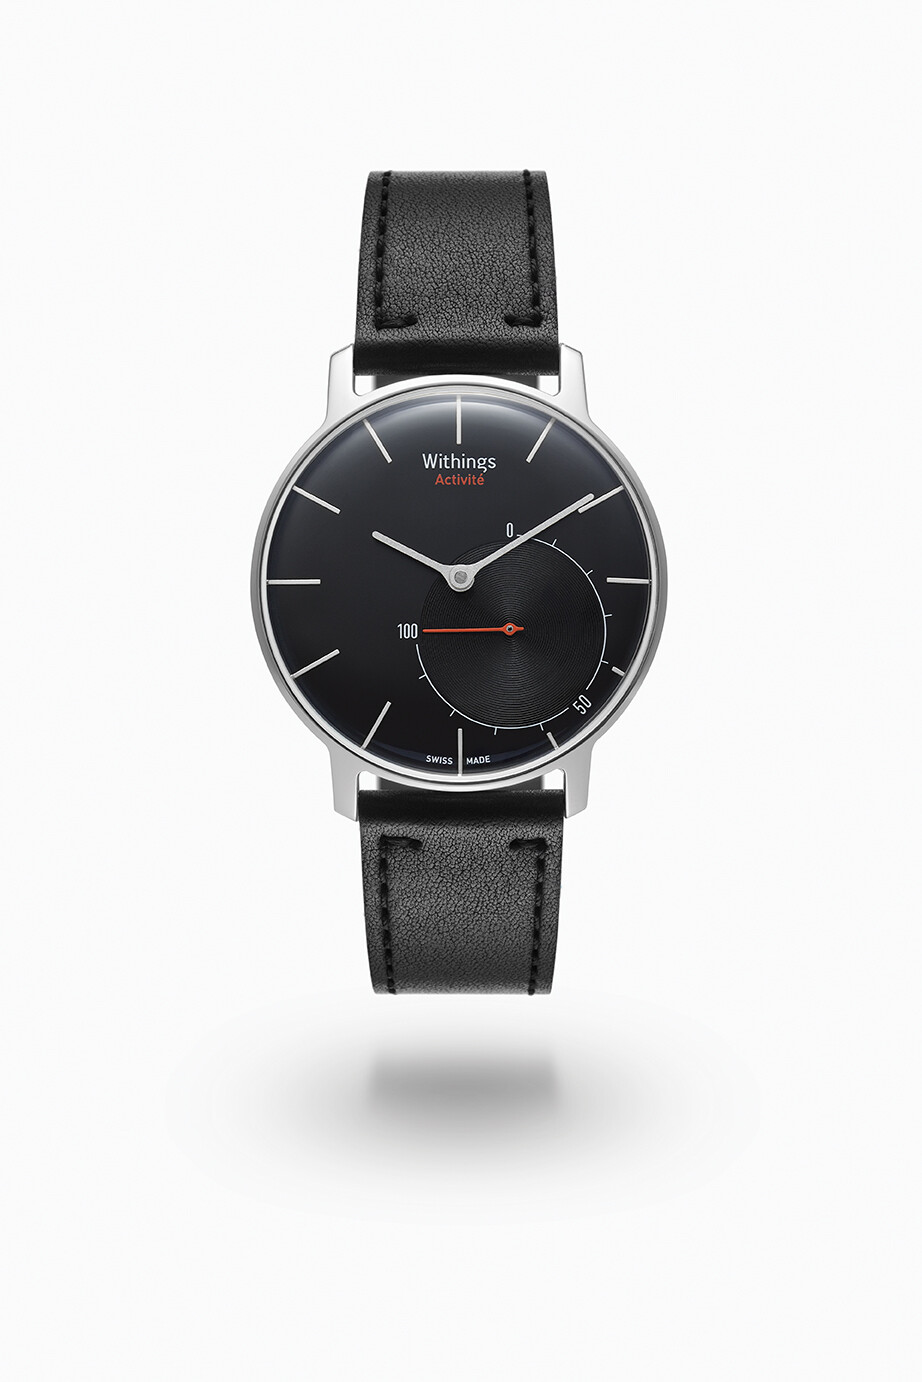 3.Withings_Activité_black_front